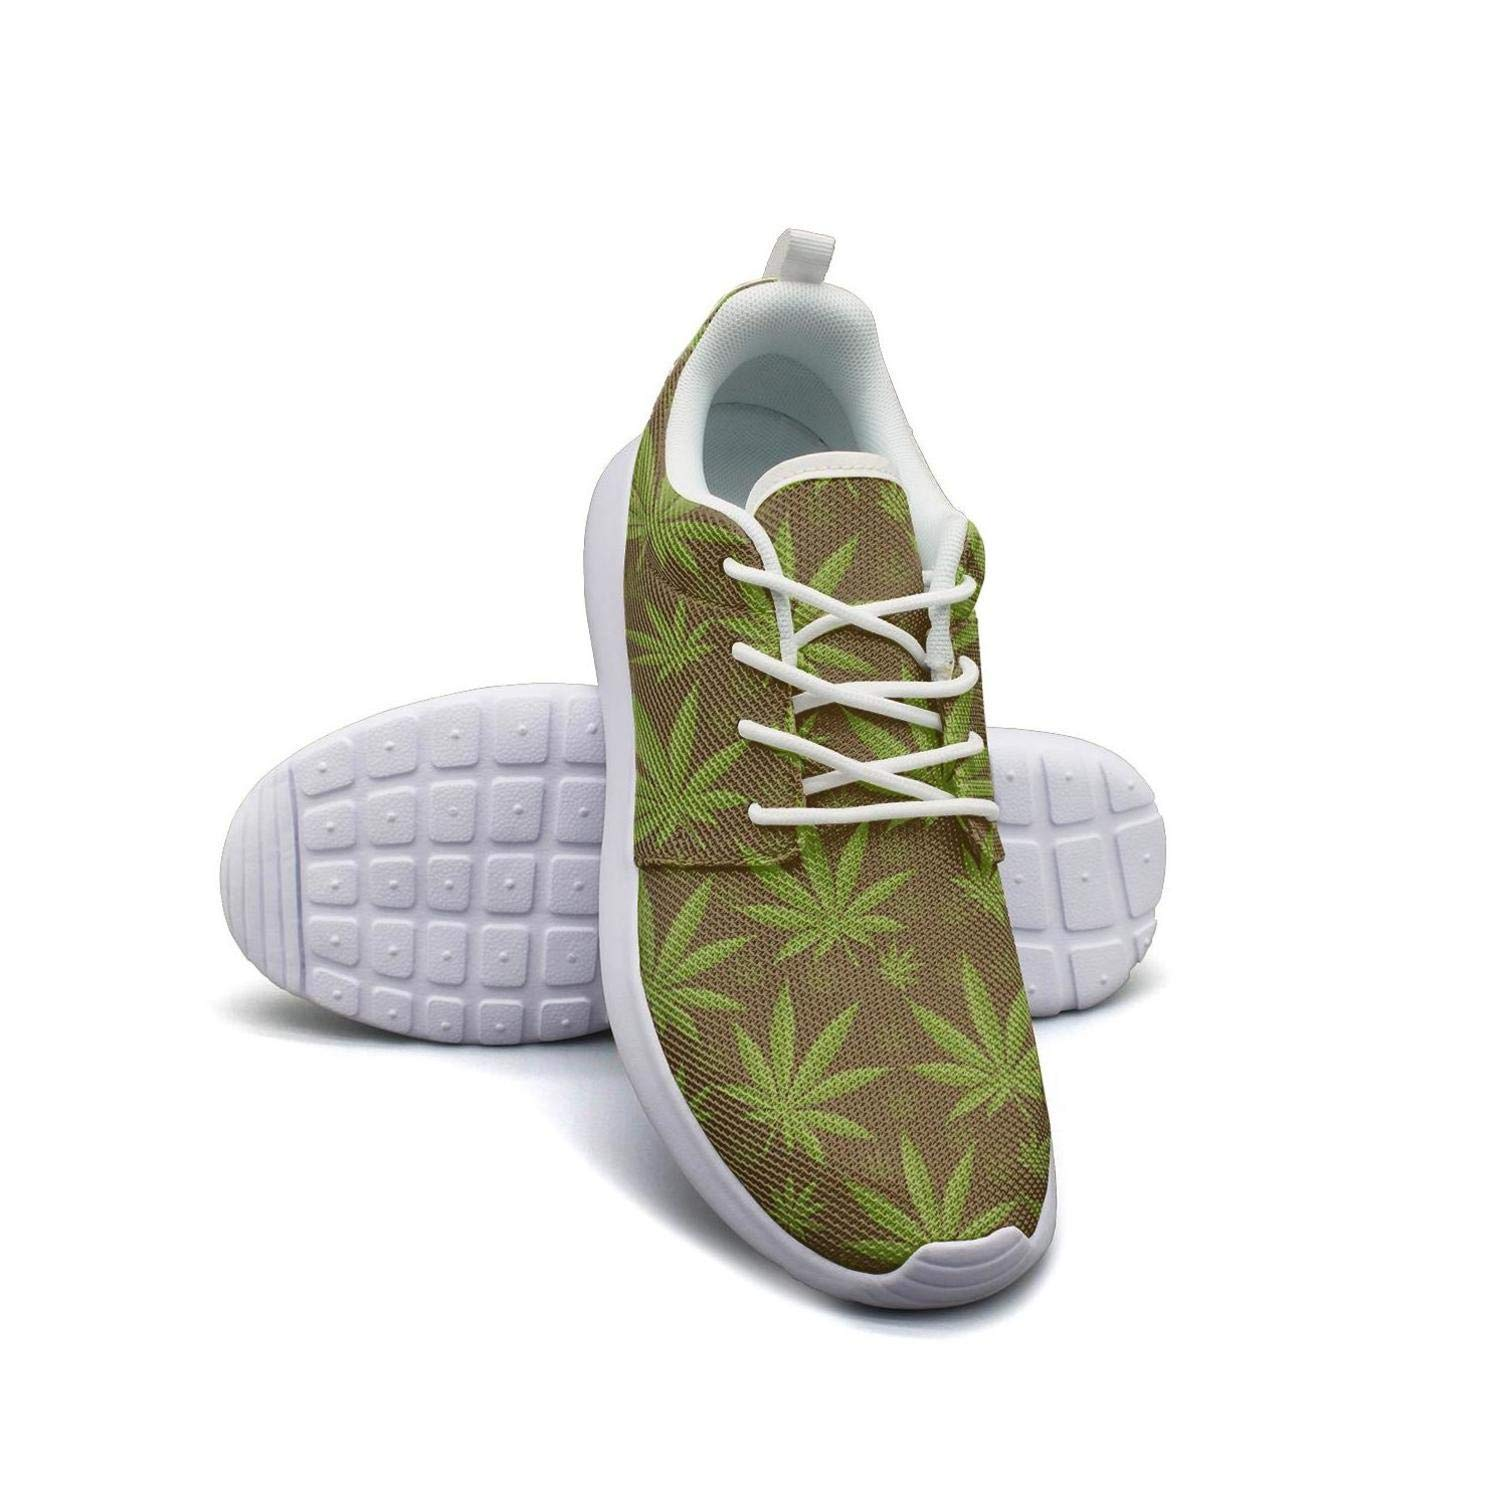 Marijuana cannabis is an endless Ladies Sneakers for Women cute Non-Slip On Running Shoes